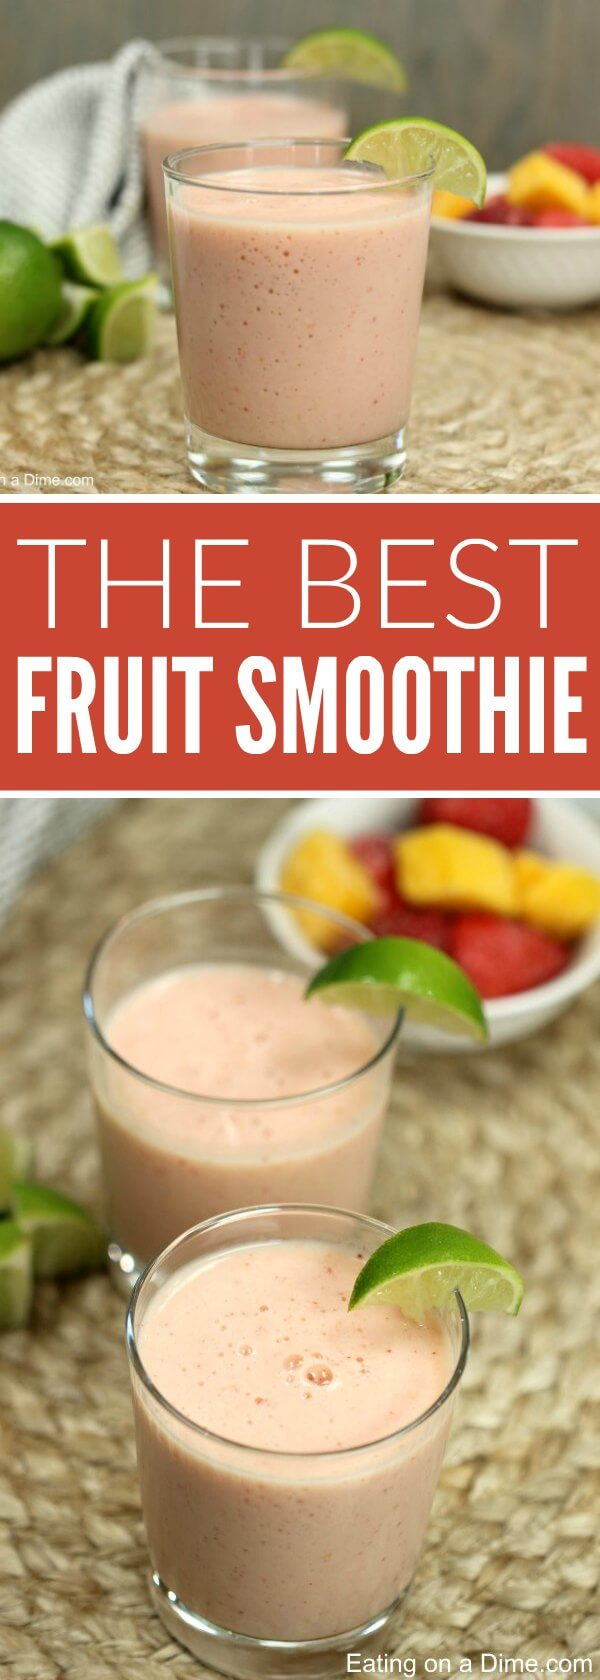 Try this Easy Frozen Fruit Smoothie Recipe for a delicious snack or quick meal. It is such an Easy Fruit Smoothie Recipe.It's also a healthy smoothie recipe. Even the kids will love this Easy smoothie recipe. Try it with strawberries, blueberries and more!